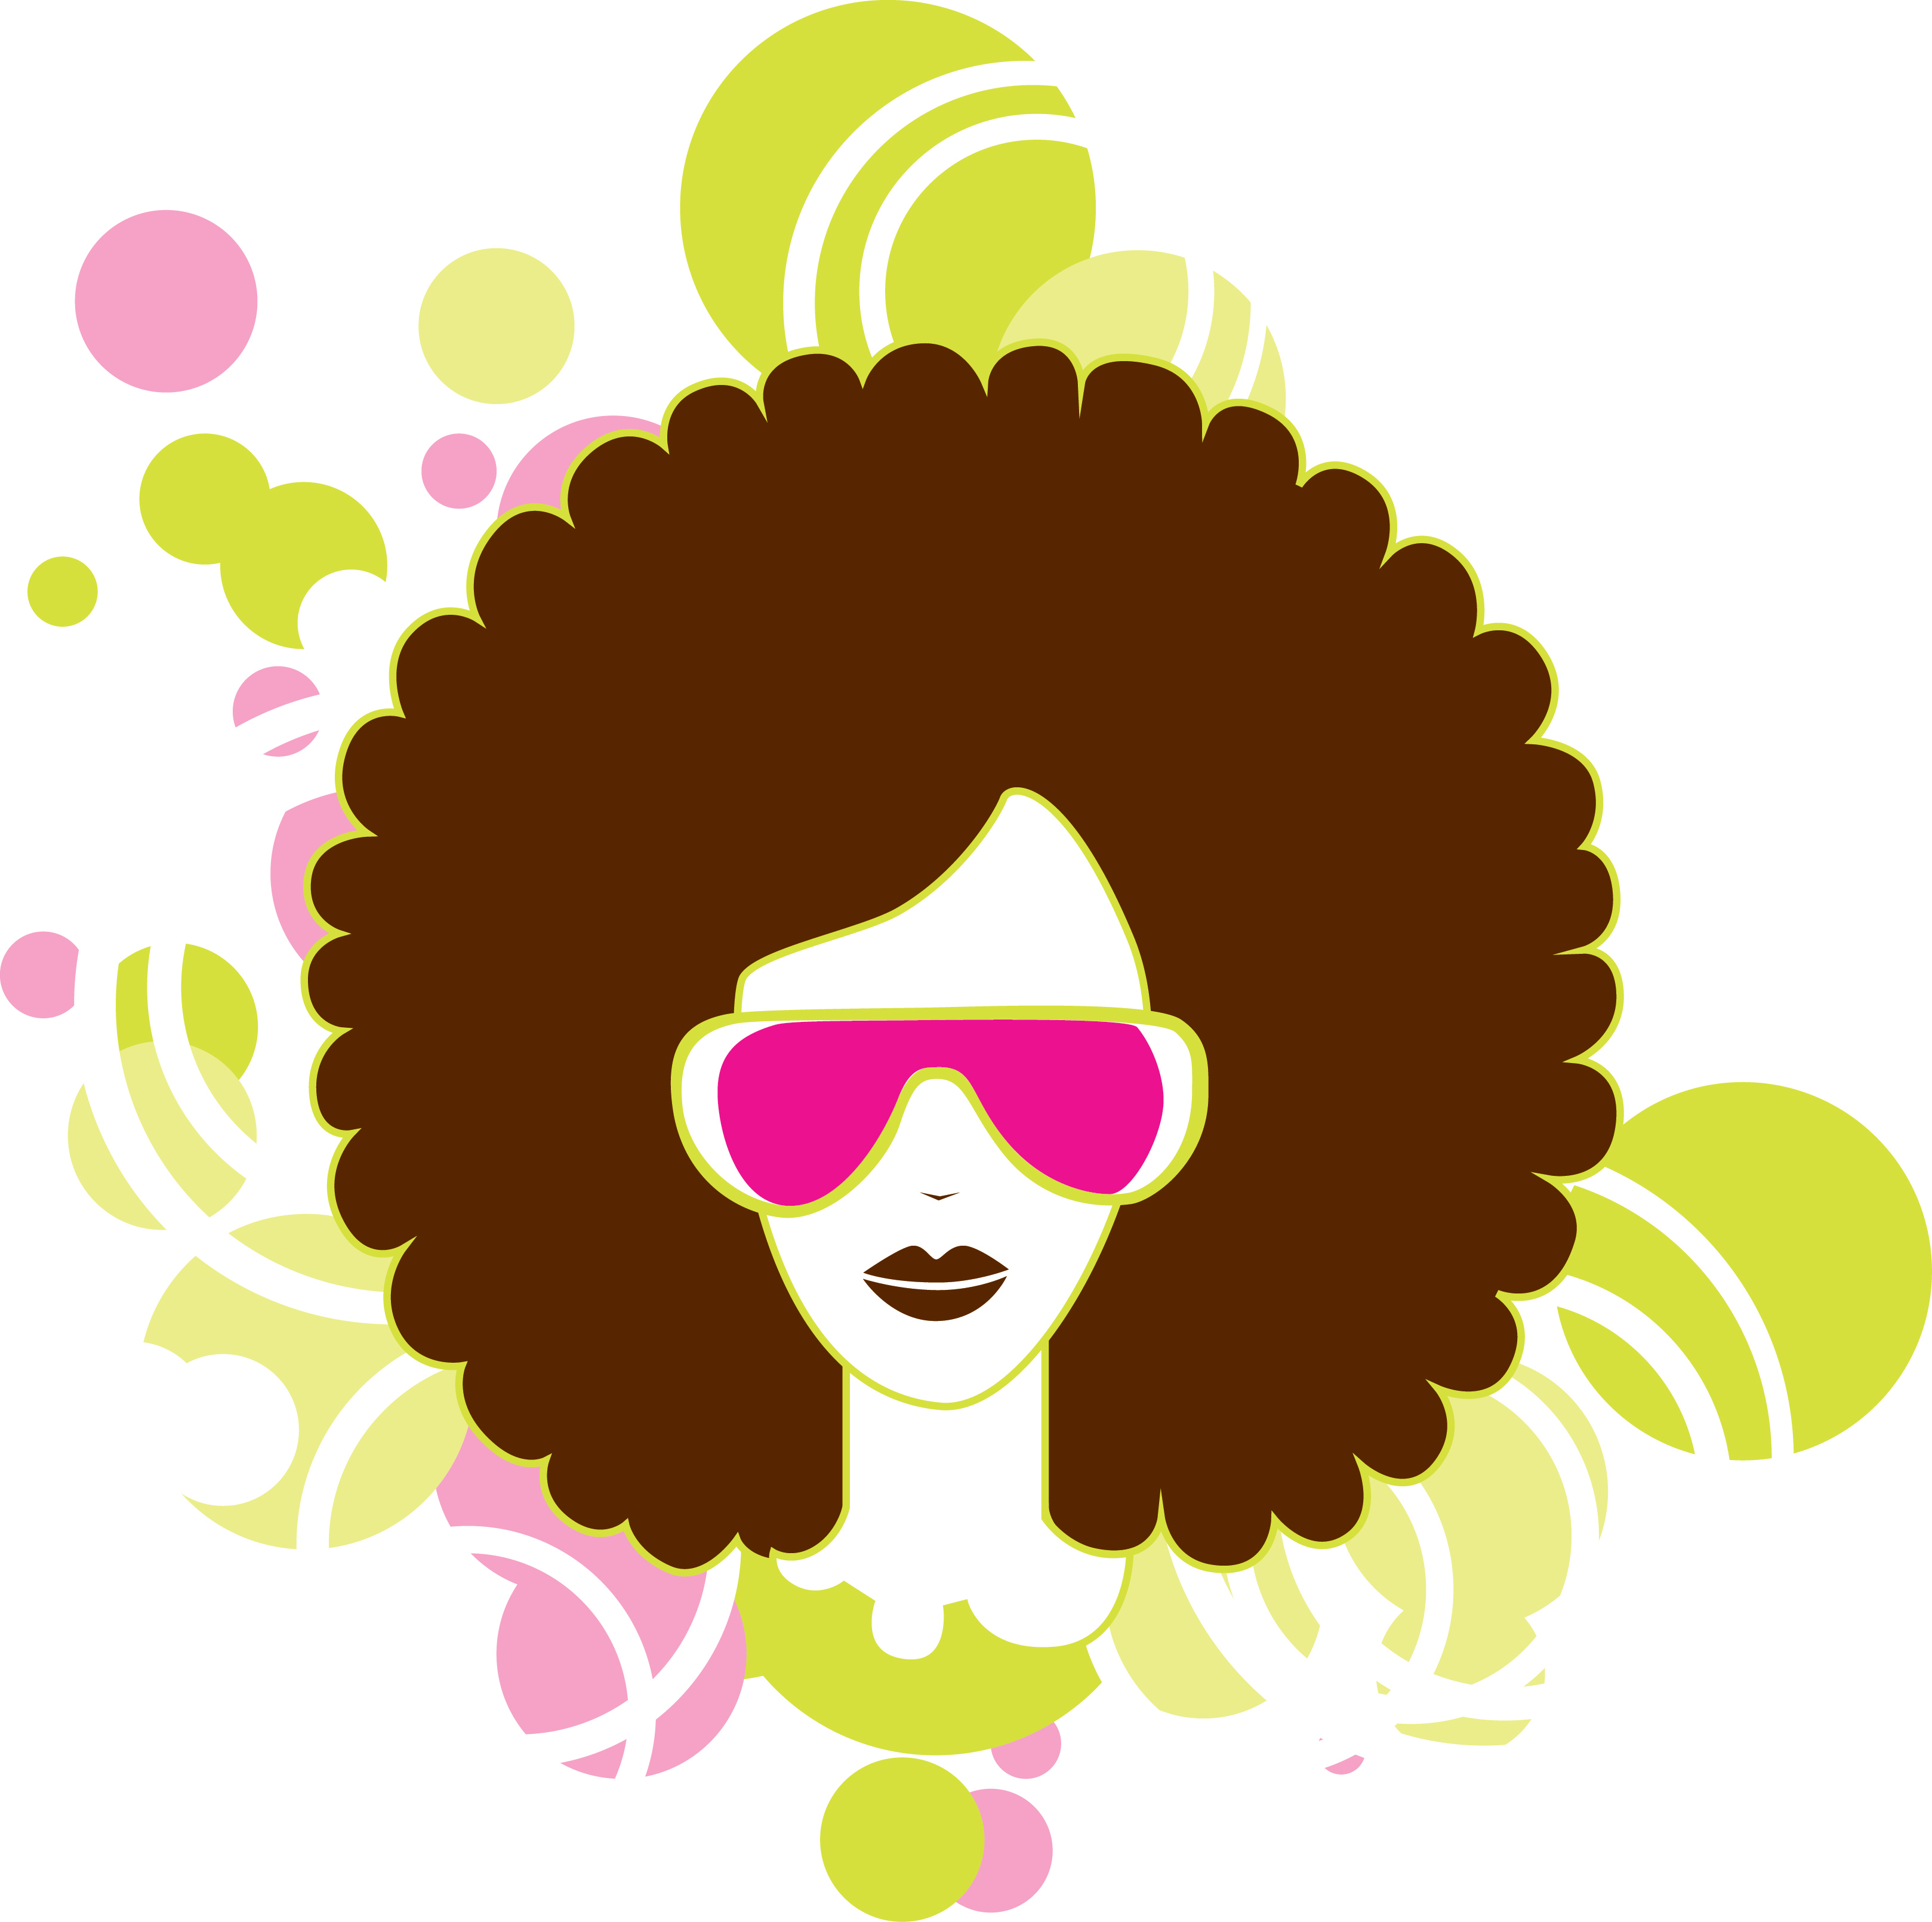 Afro Silhouette Vector.